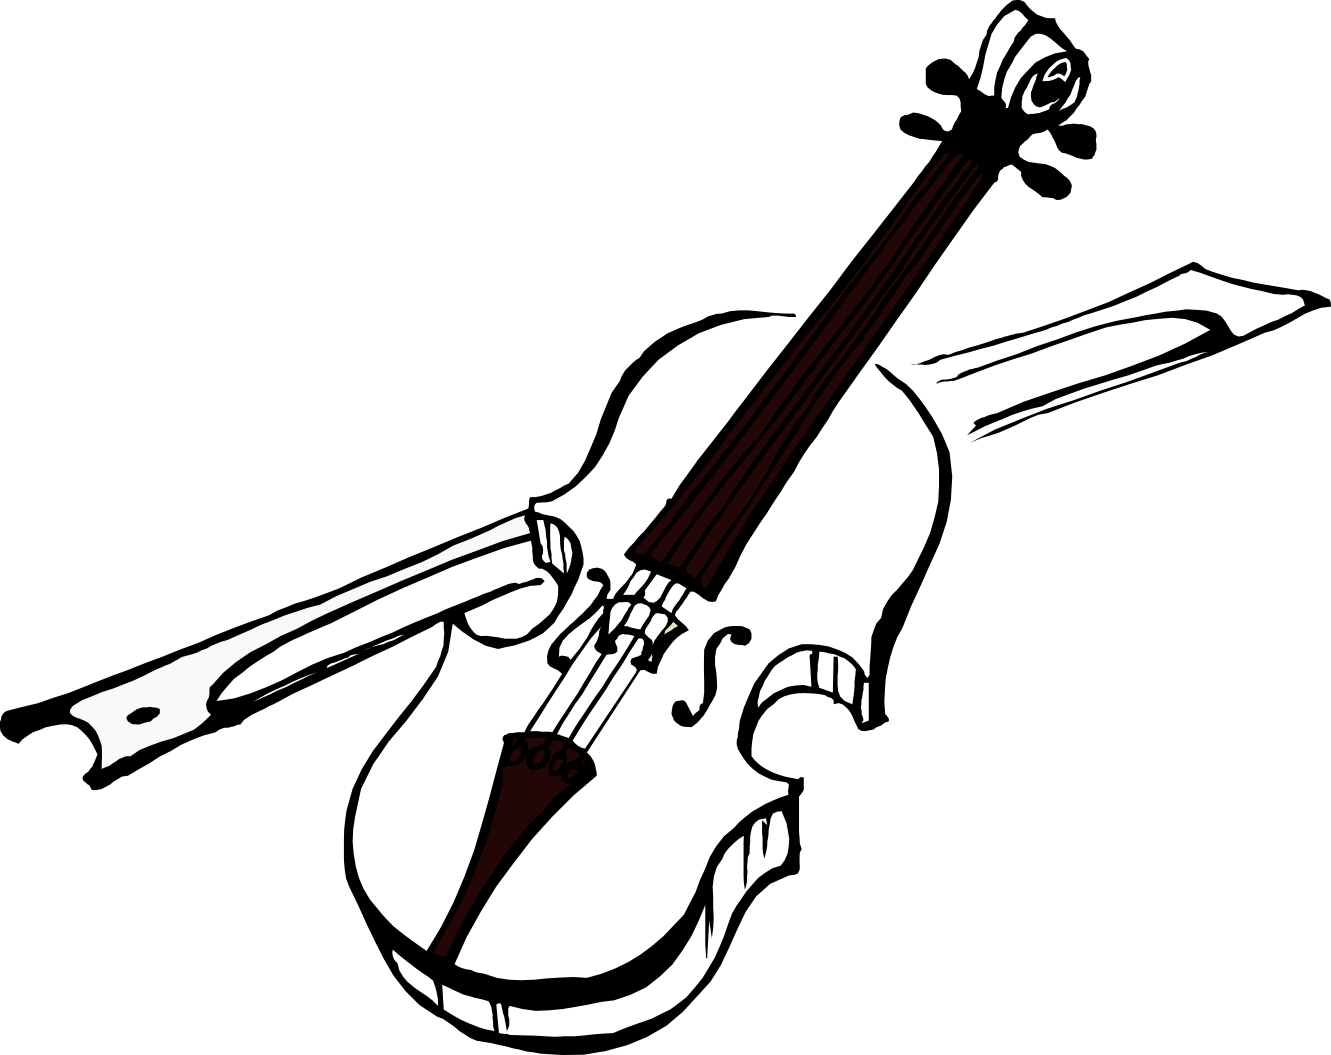 Violin pictures clip art freeuse download Violin Clipart Black And White | Clipart Panda - Free Clipart Images freeuse download